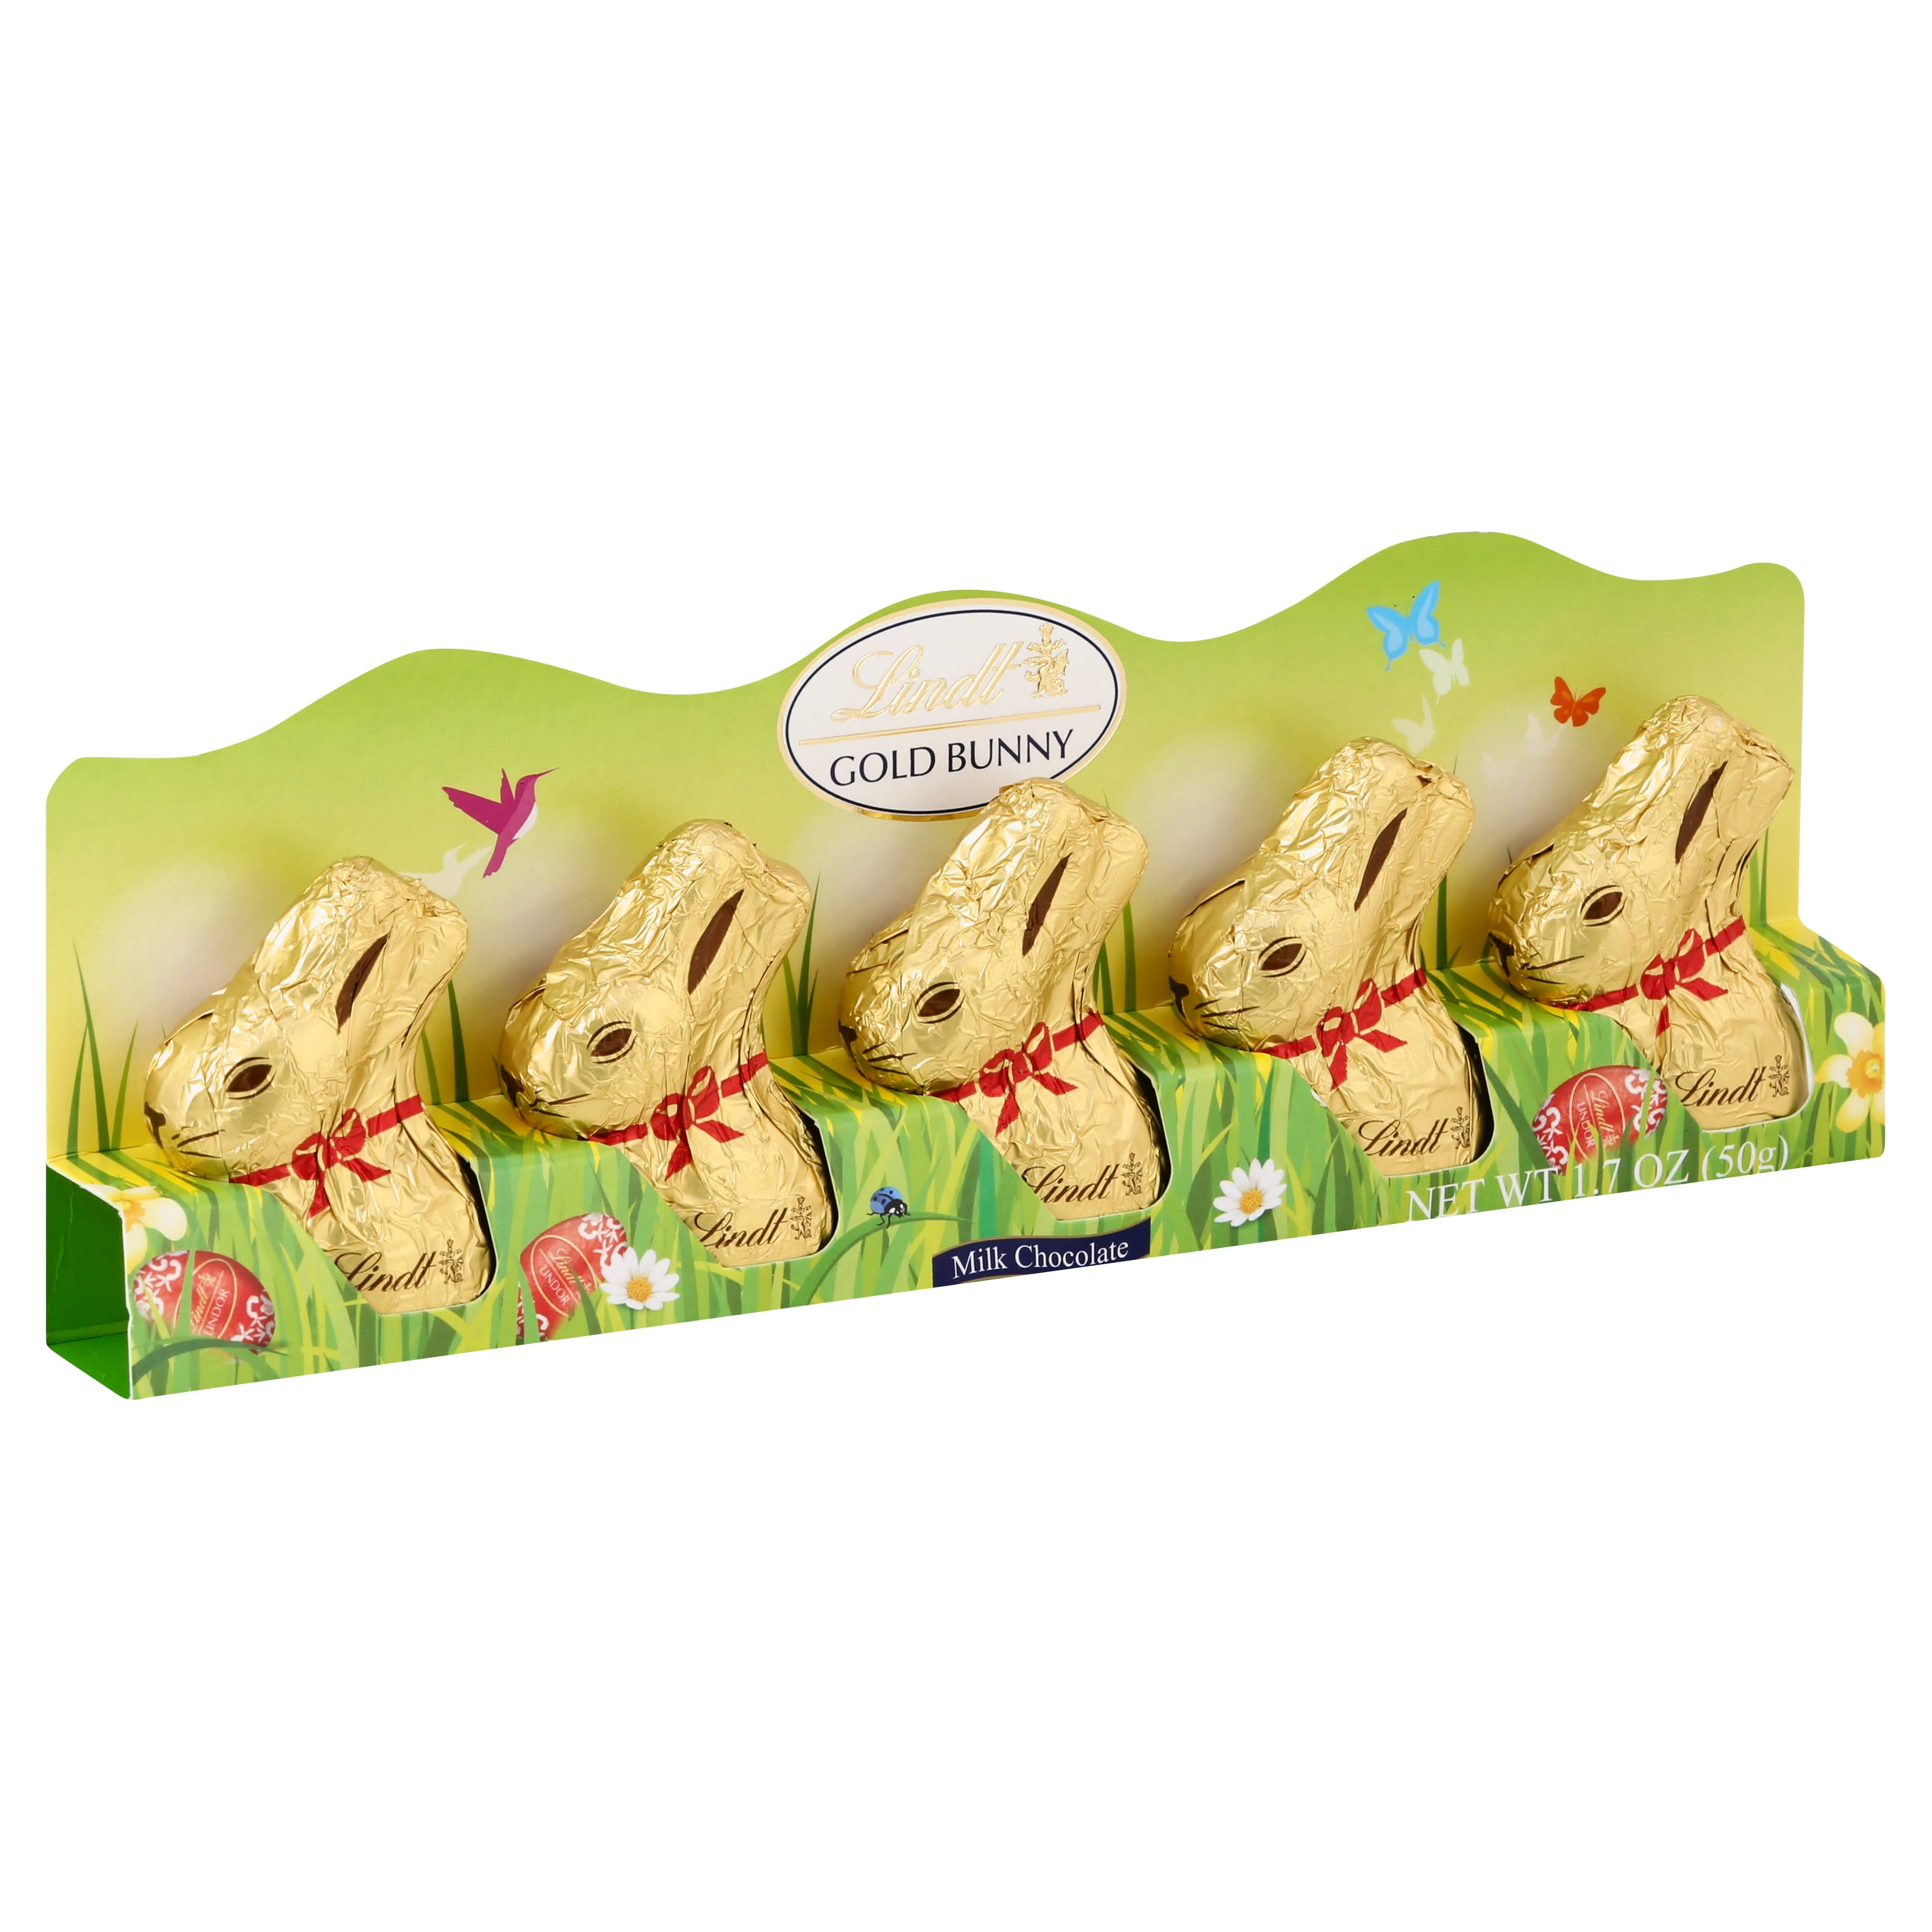 Lindt Mini Gold Bunny Milk Chocolate - 1.7oz, 5ct